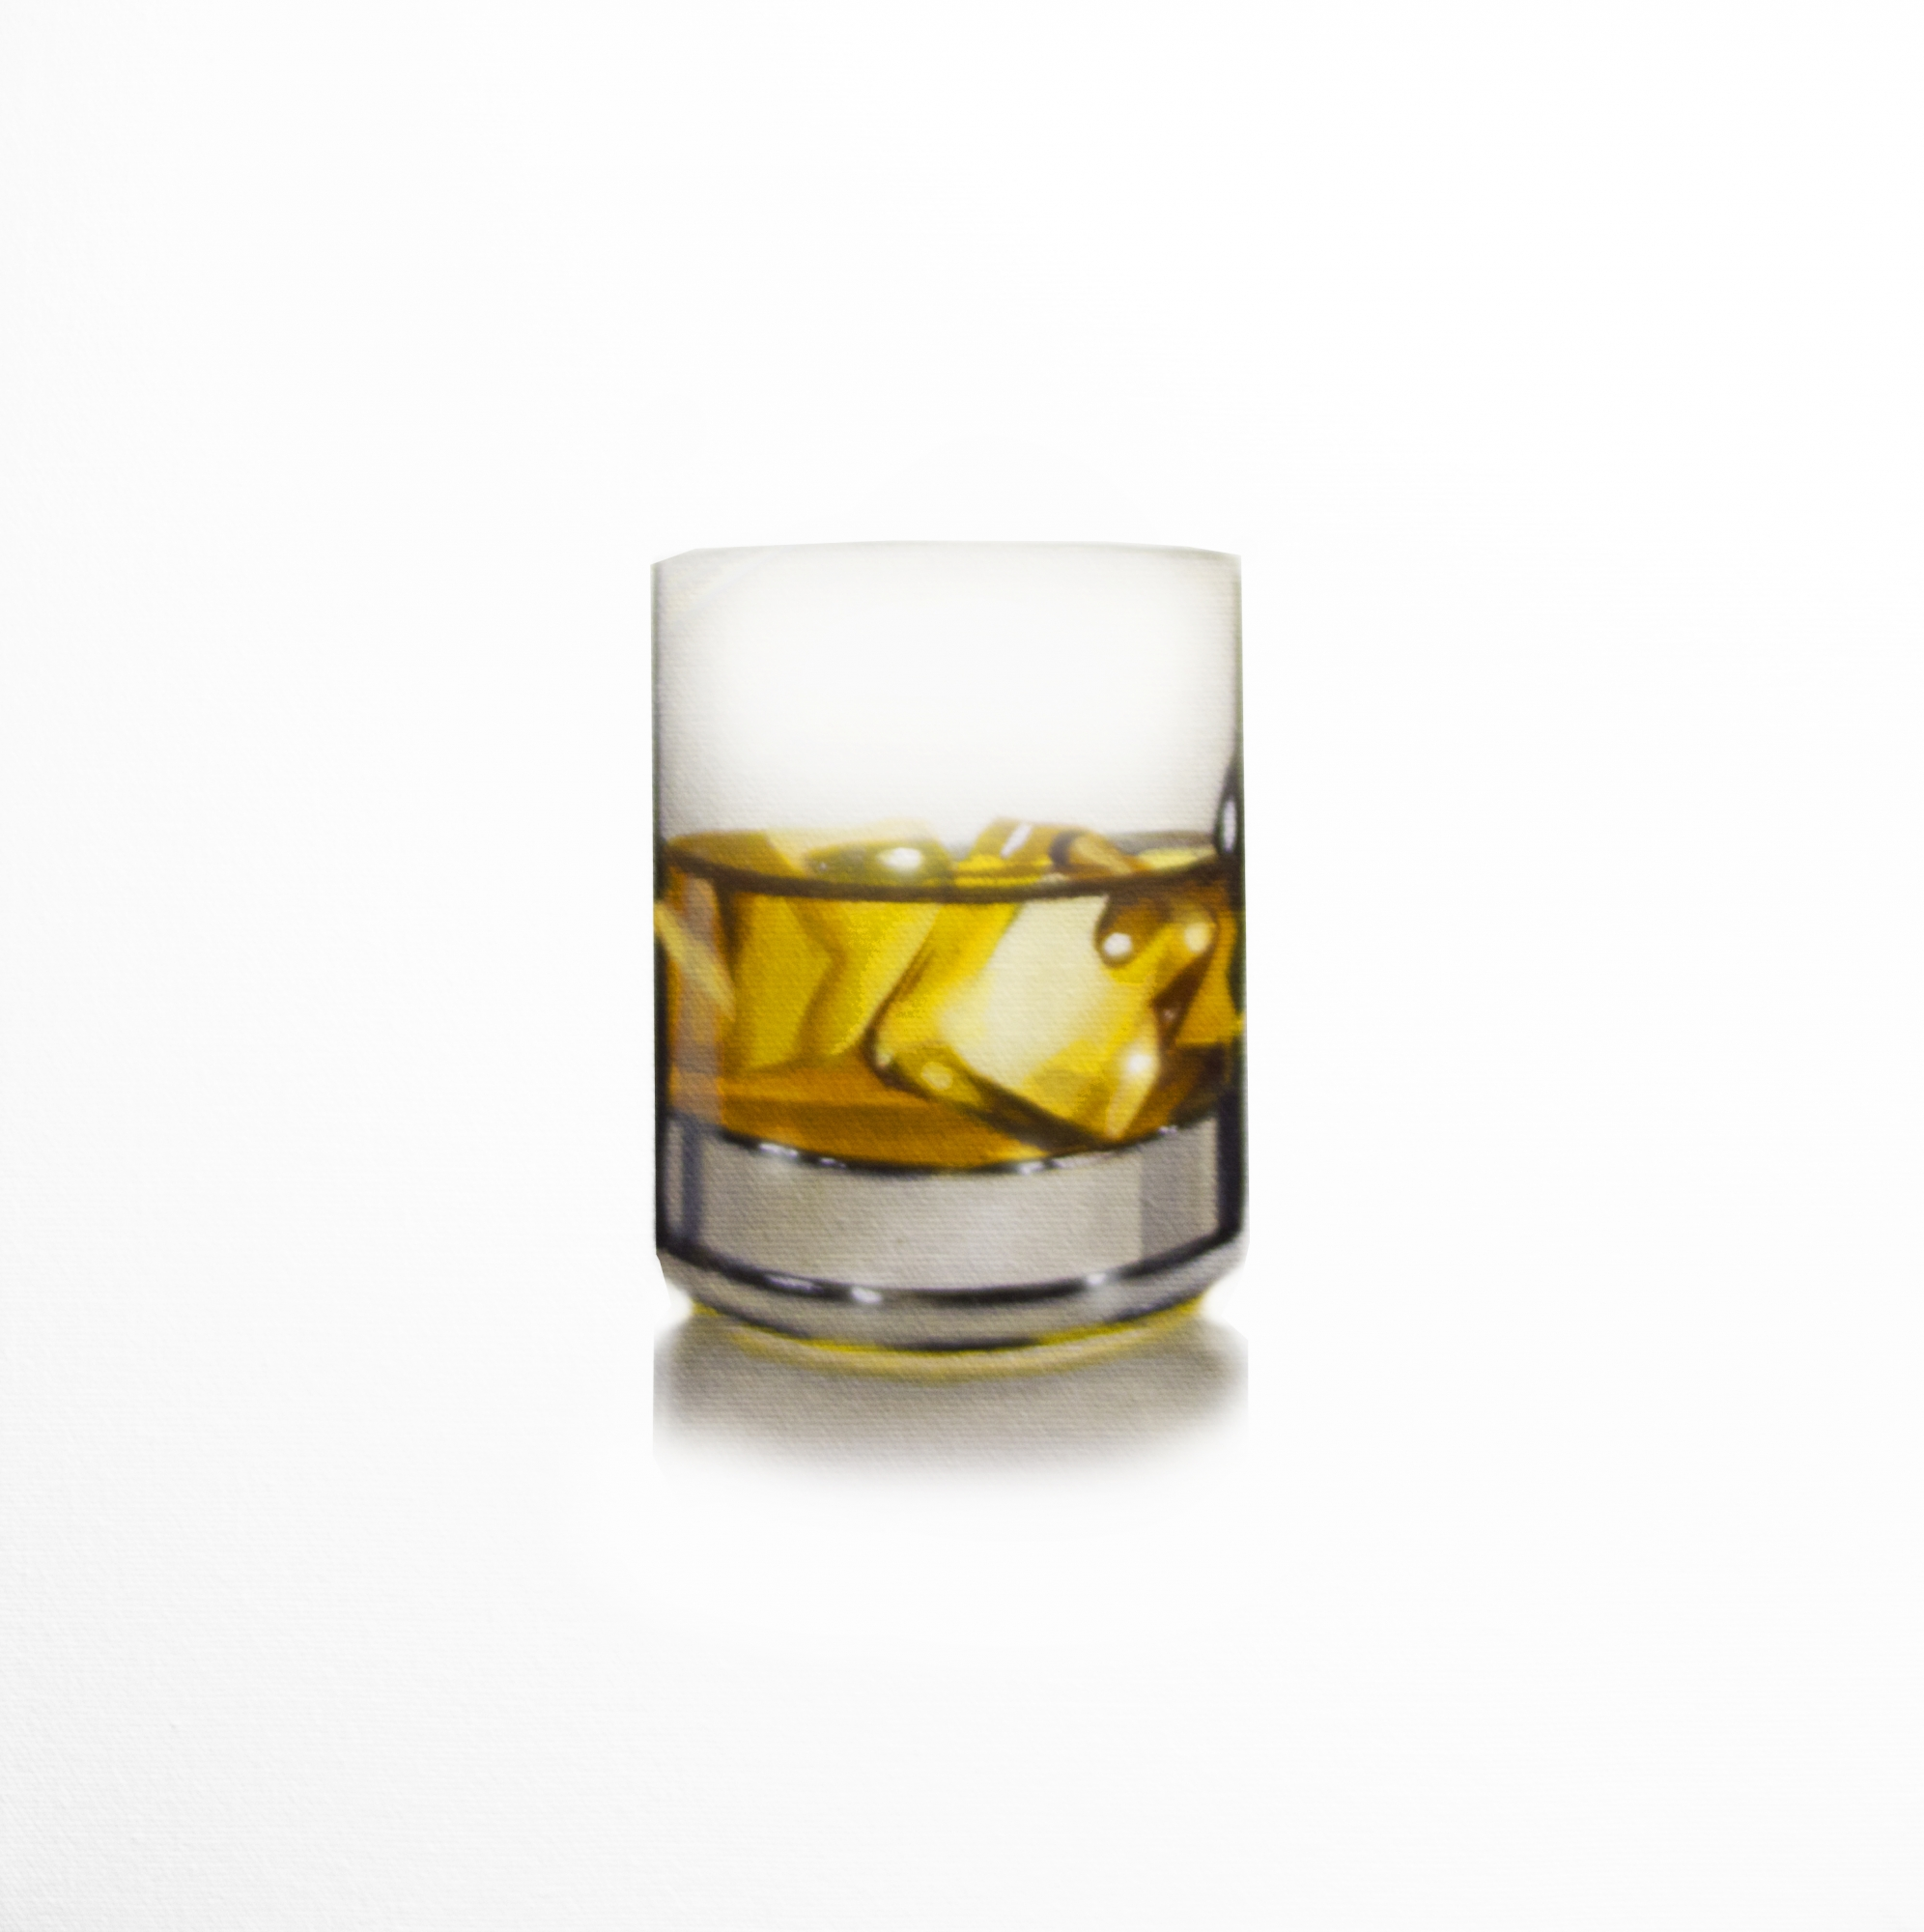 Tasting Room - Scotch Glass by Erin Rothstein